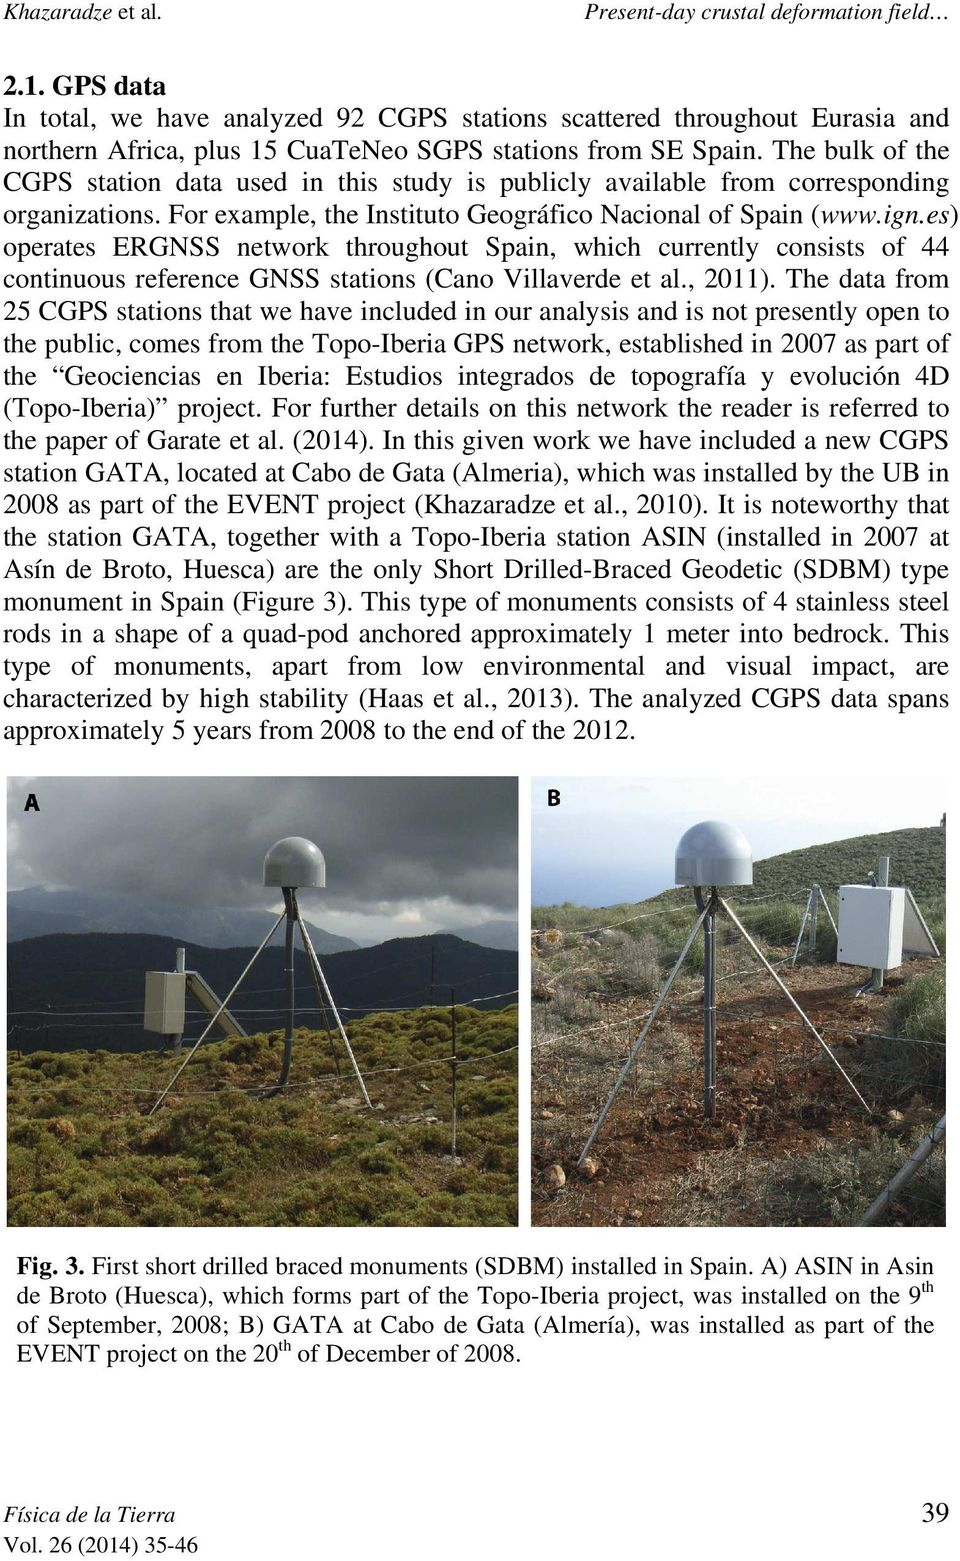 The geodetic network consists of 15 points, from which 11 were built using specifically designed concrete monuments with an embedded 5/8'' threads to ensure an easy cantering of the GPS antennas